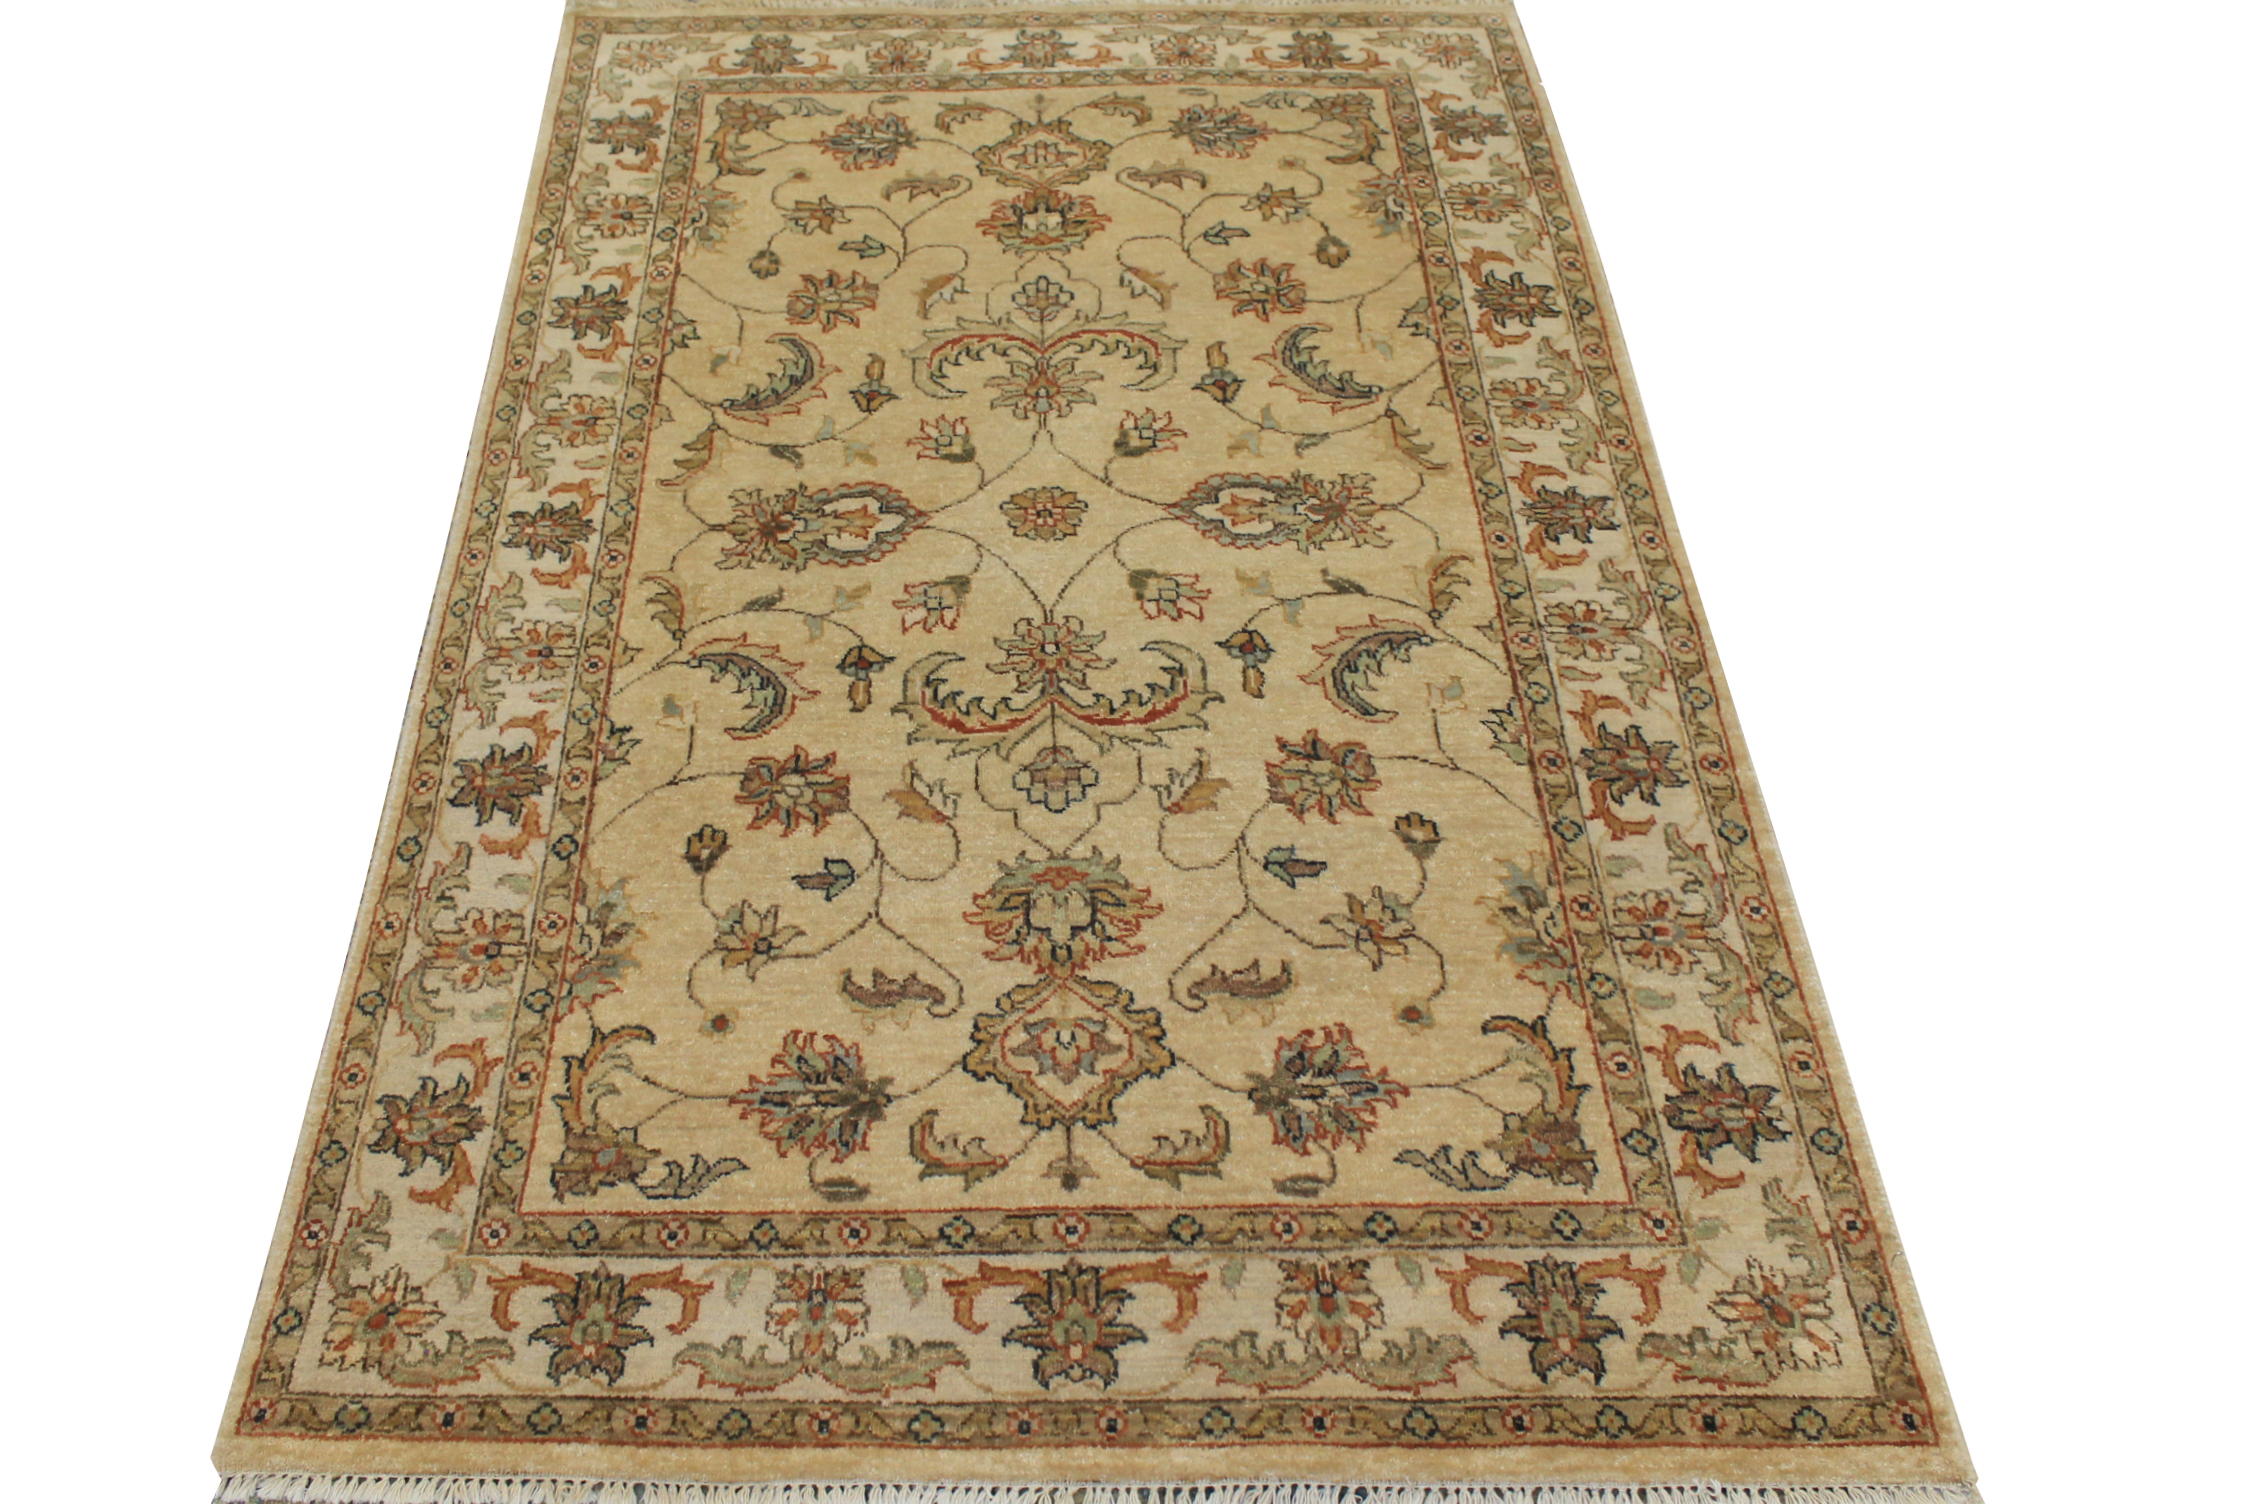 4x6 Traditional Hand Knotted Wool Area Rug - MR14708